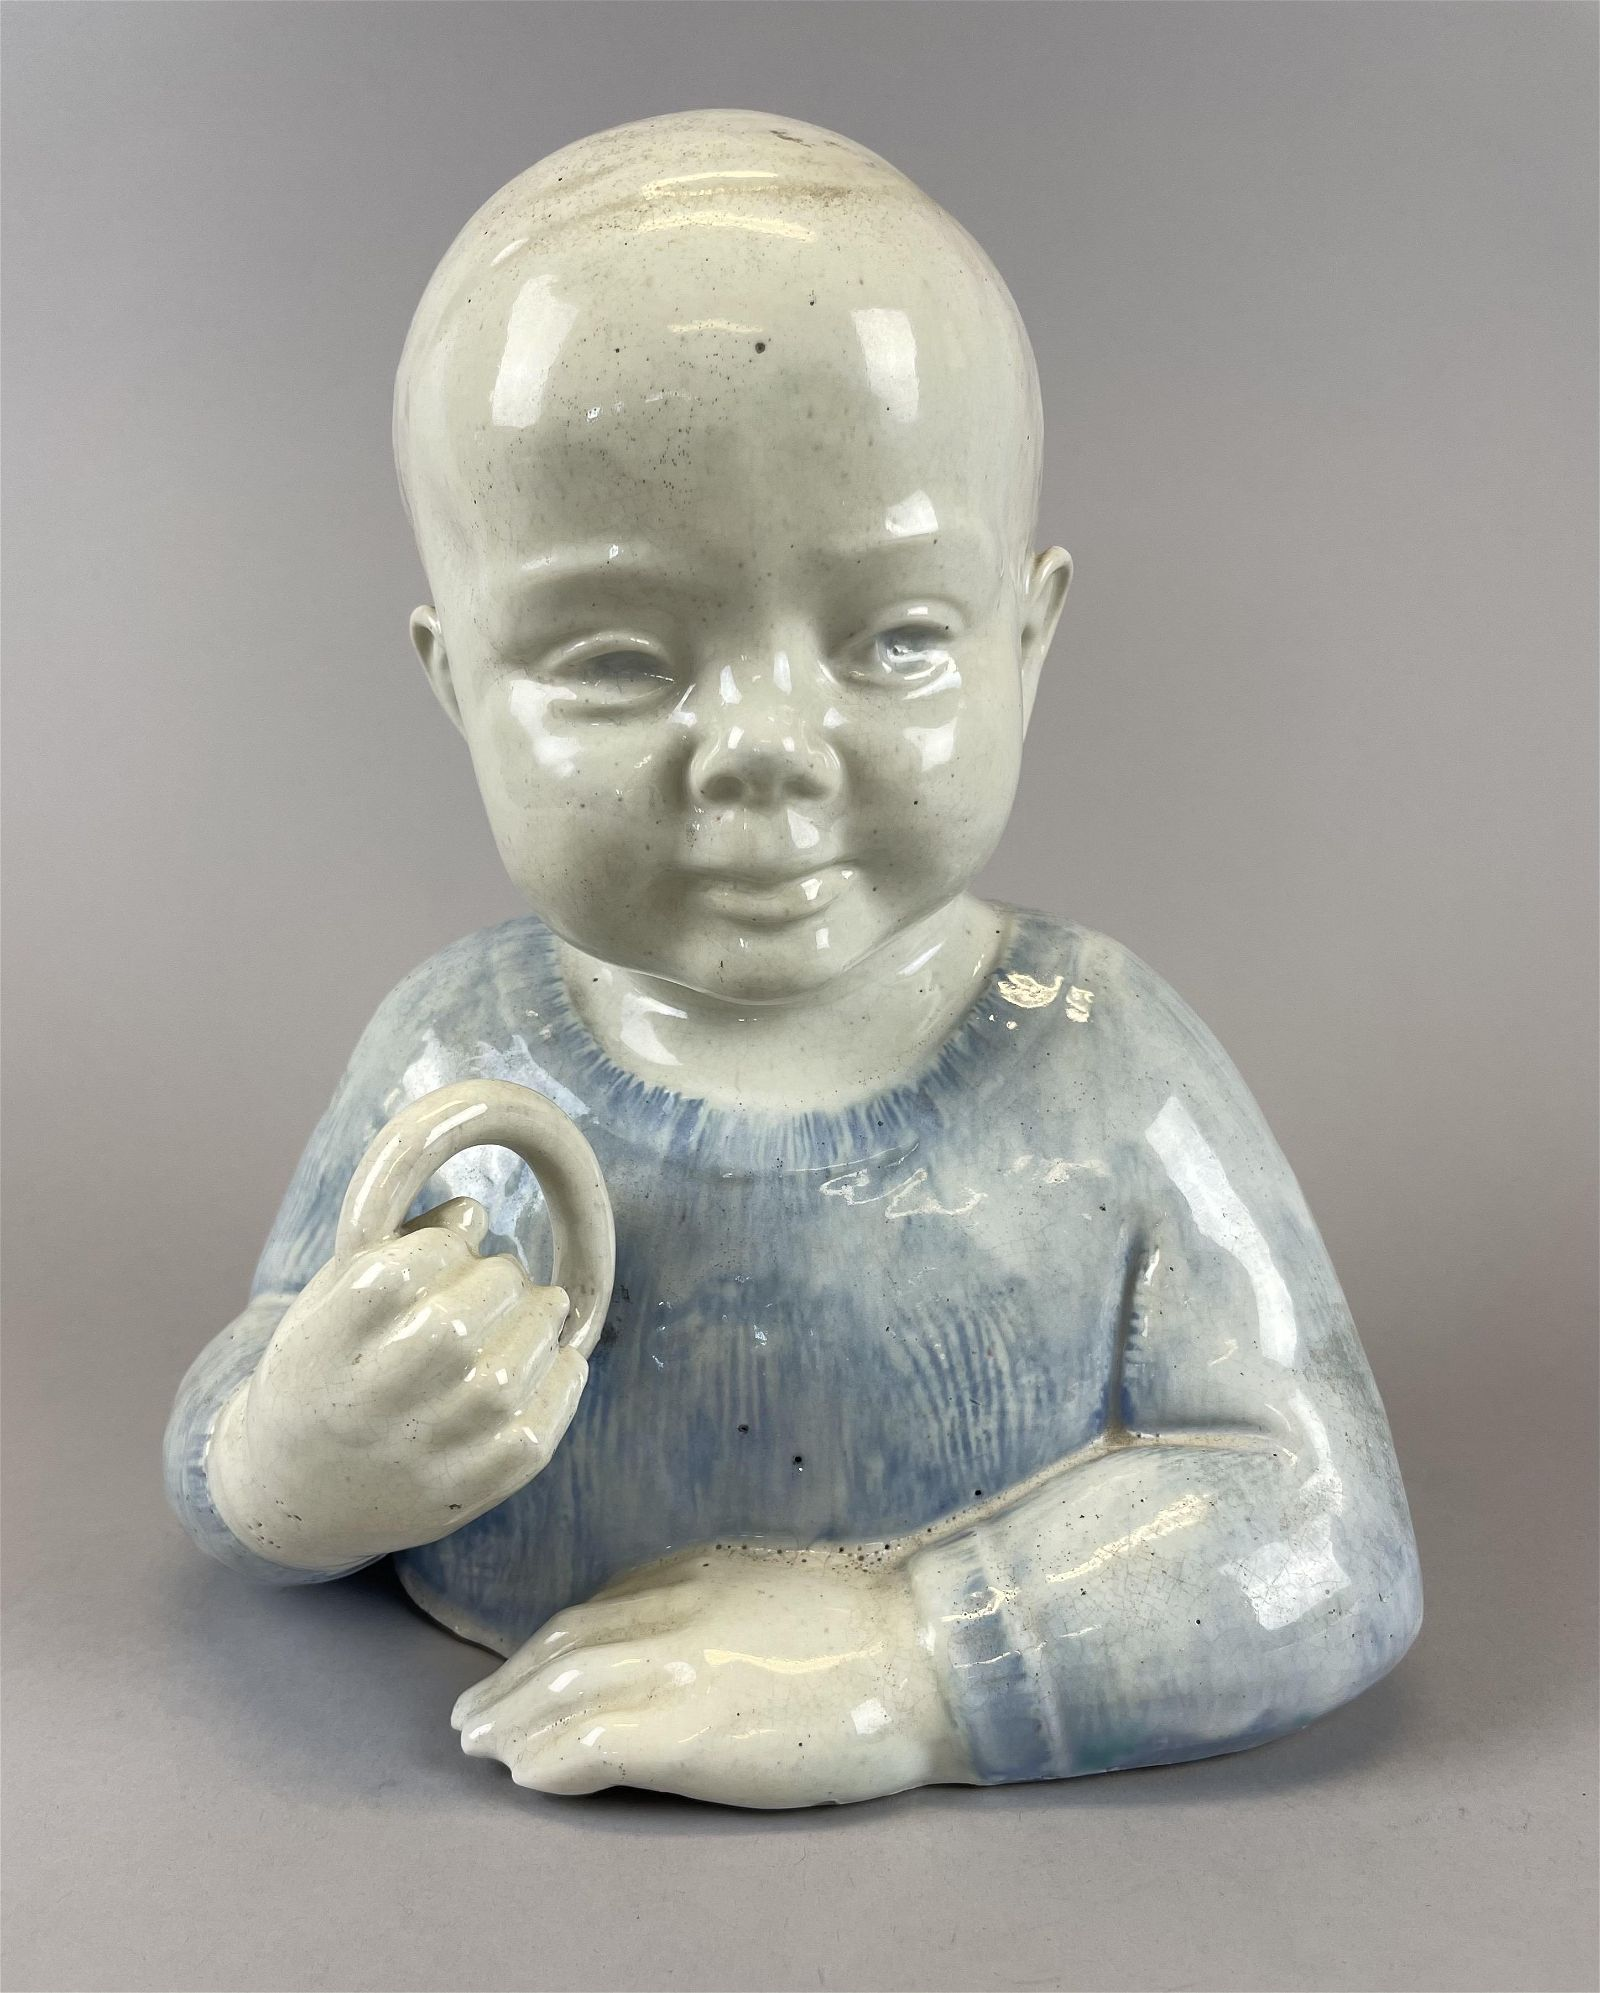 Rare Waylande Gregory Bust of a Child from Cranbrook